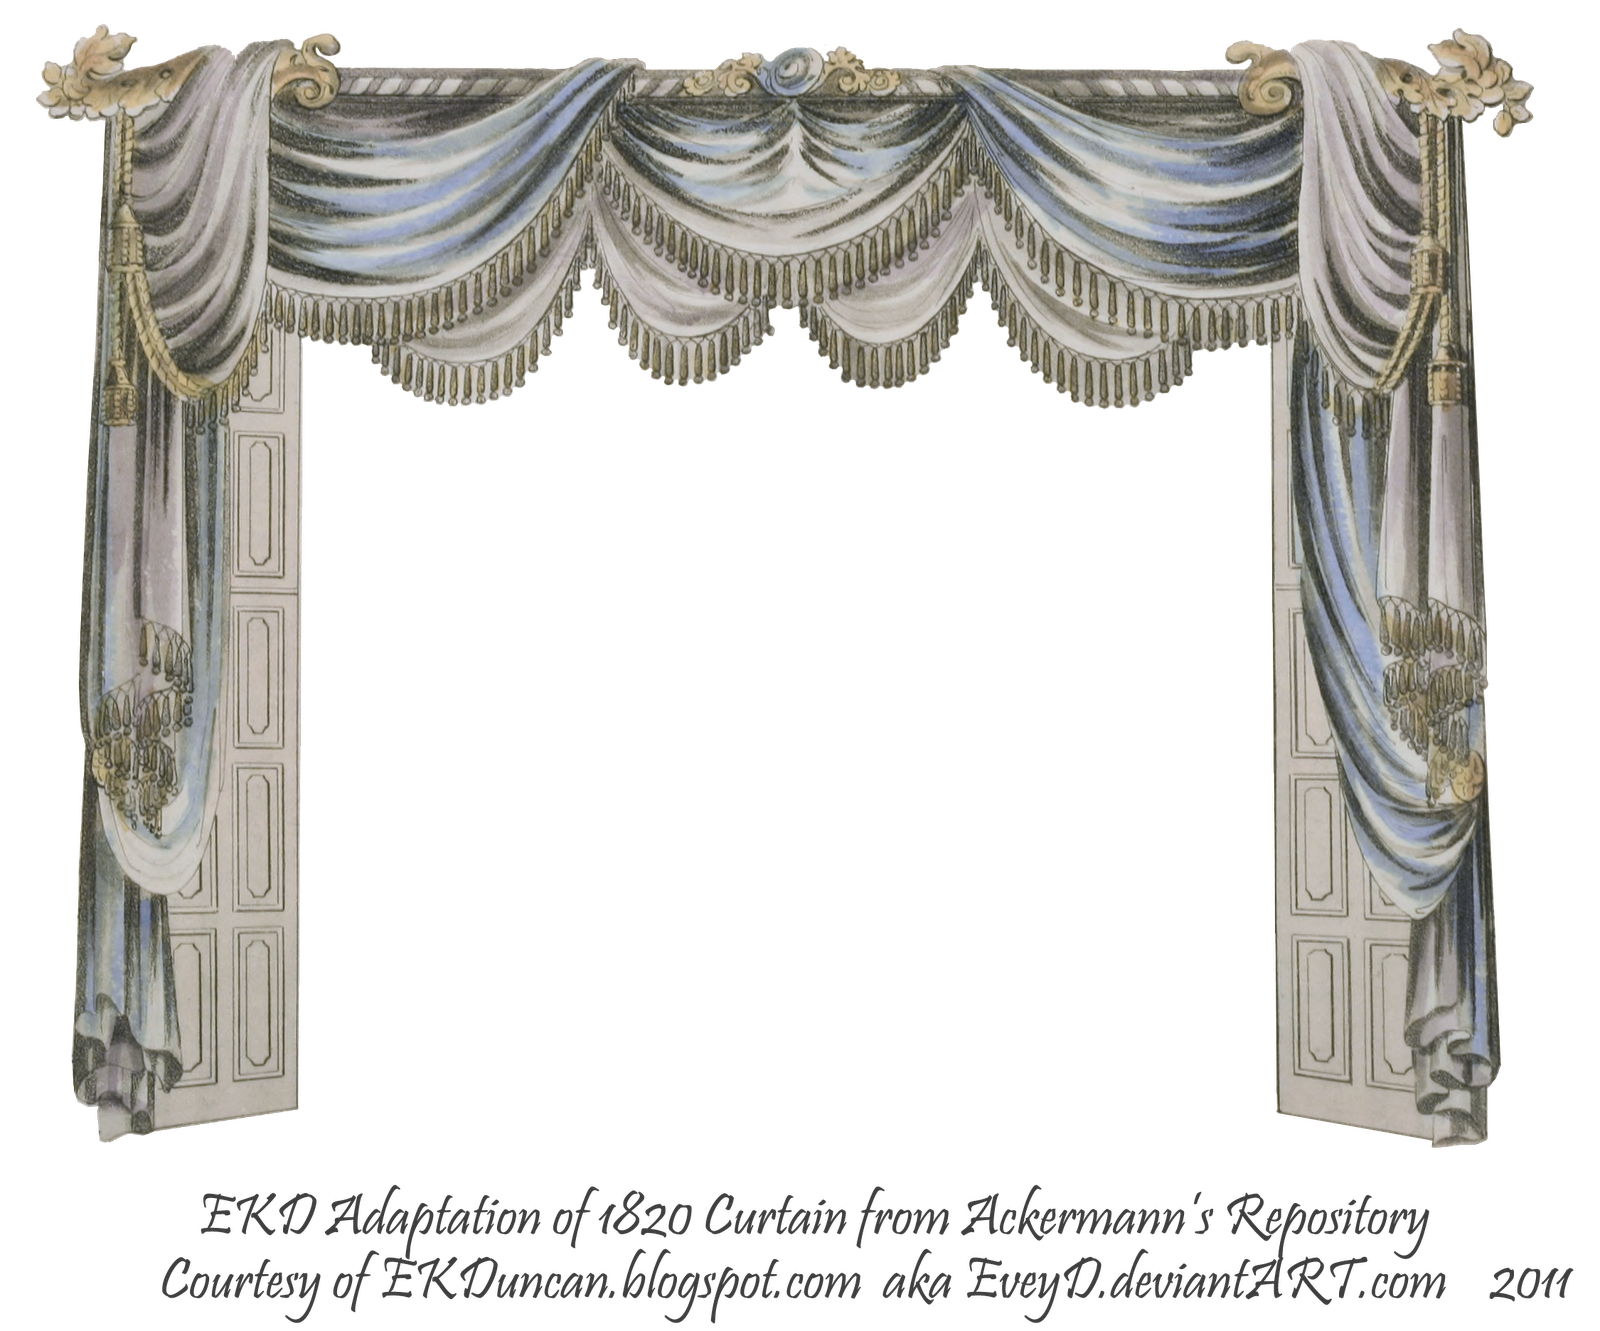 White Cinema Curtain Png Images 369